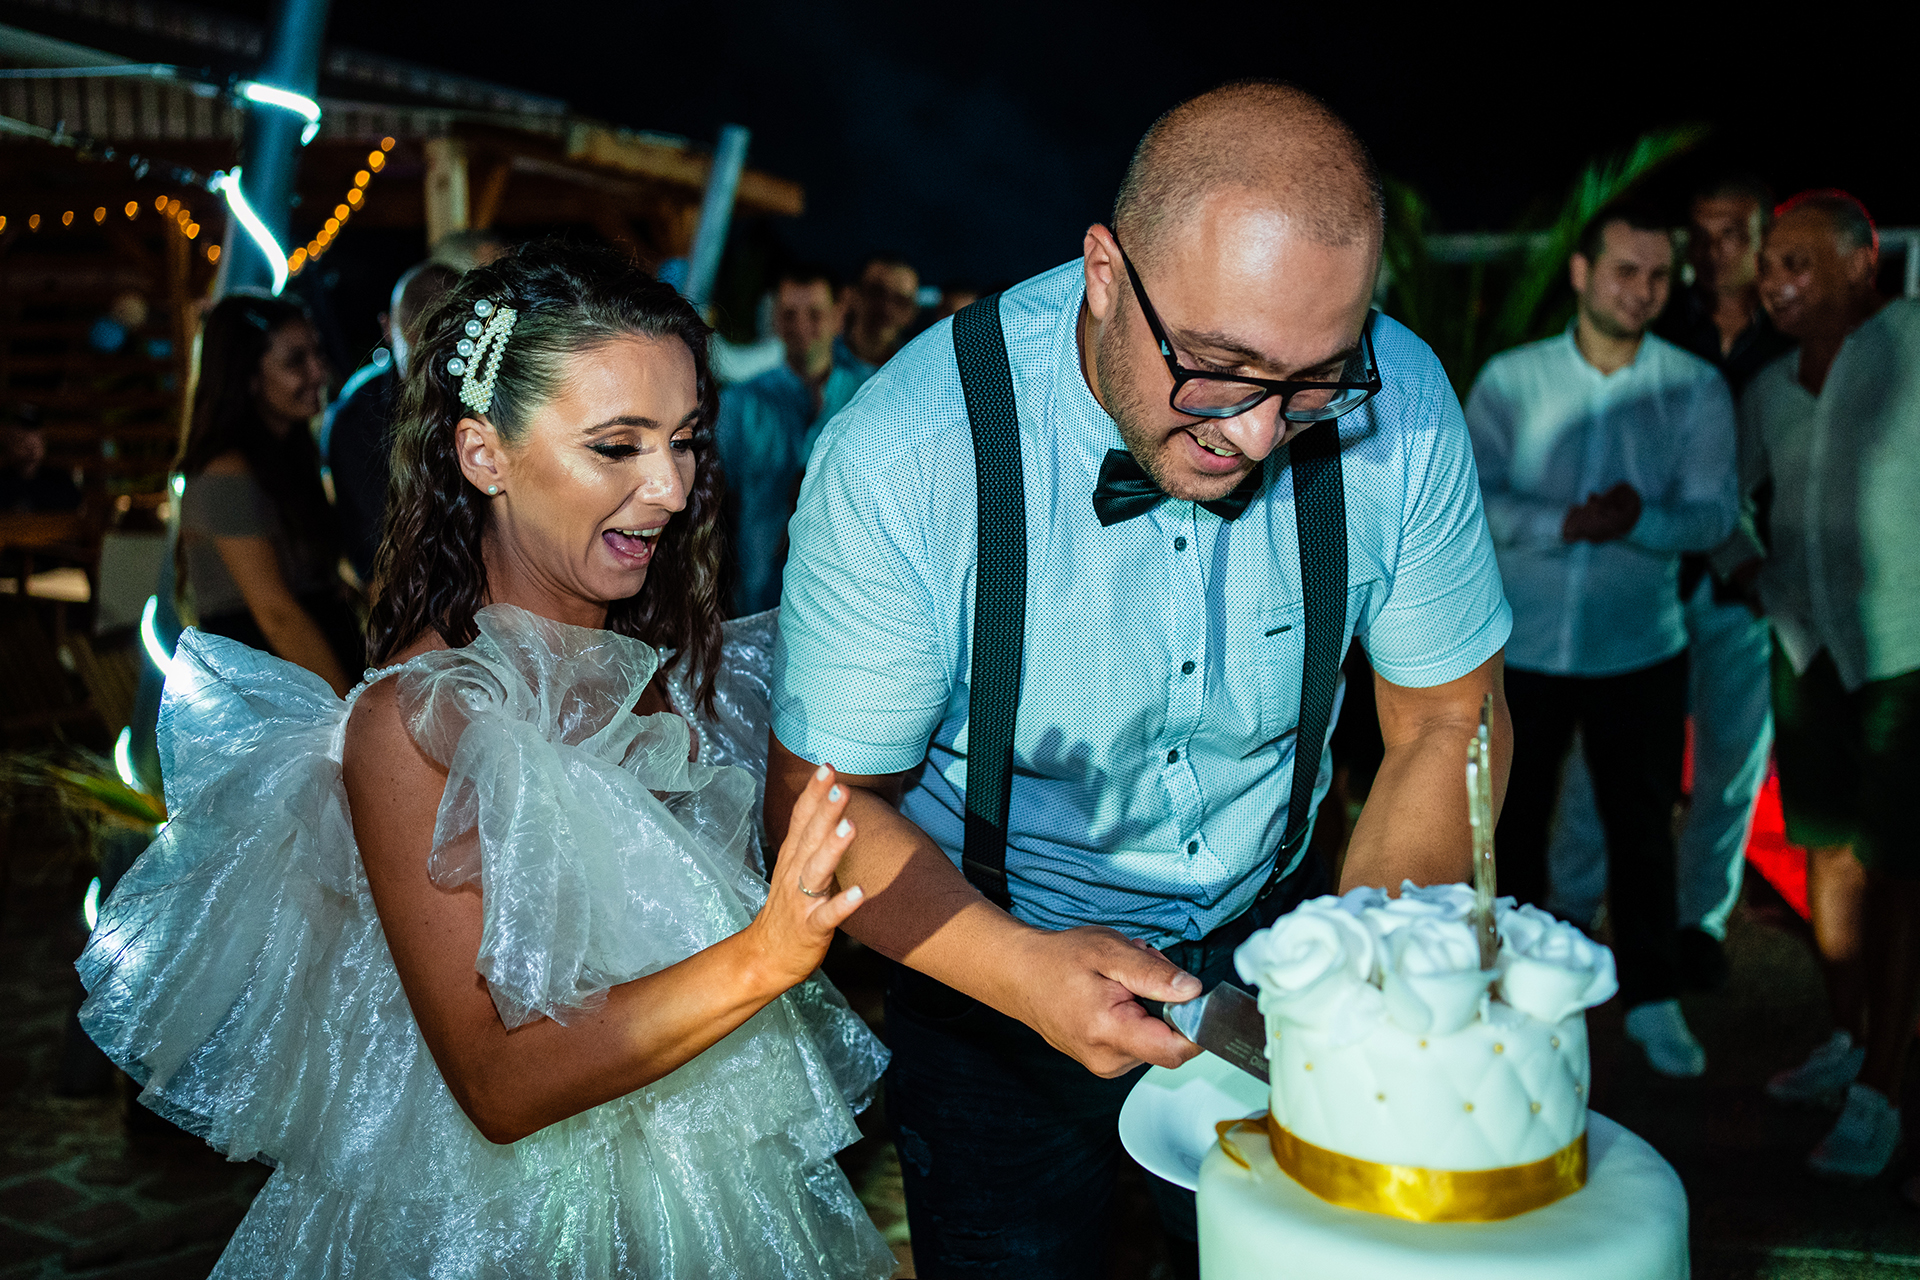 Elopement Photography from Crazy Pool, Ruse, Bulgaria | The bride watches excitedly as the groom slices the first piece of cake